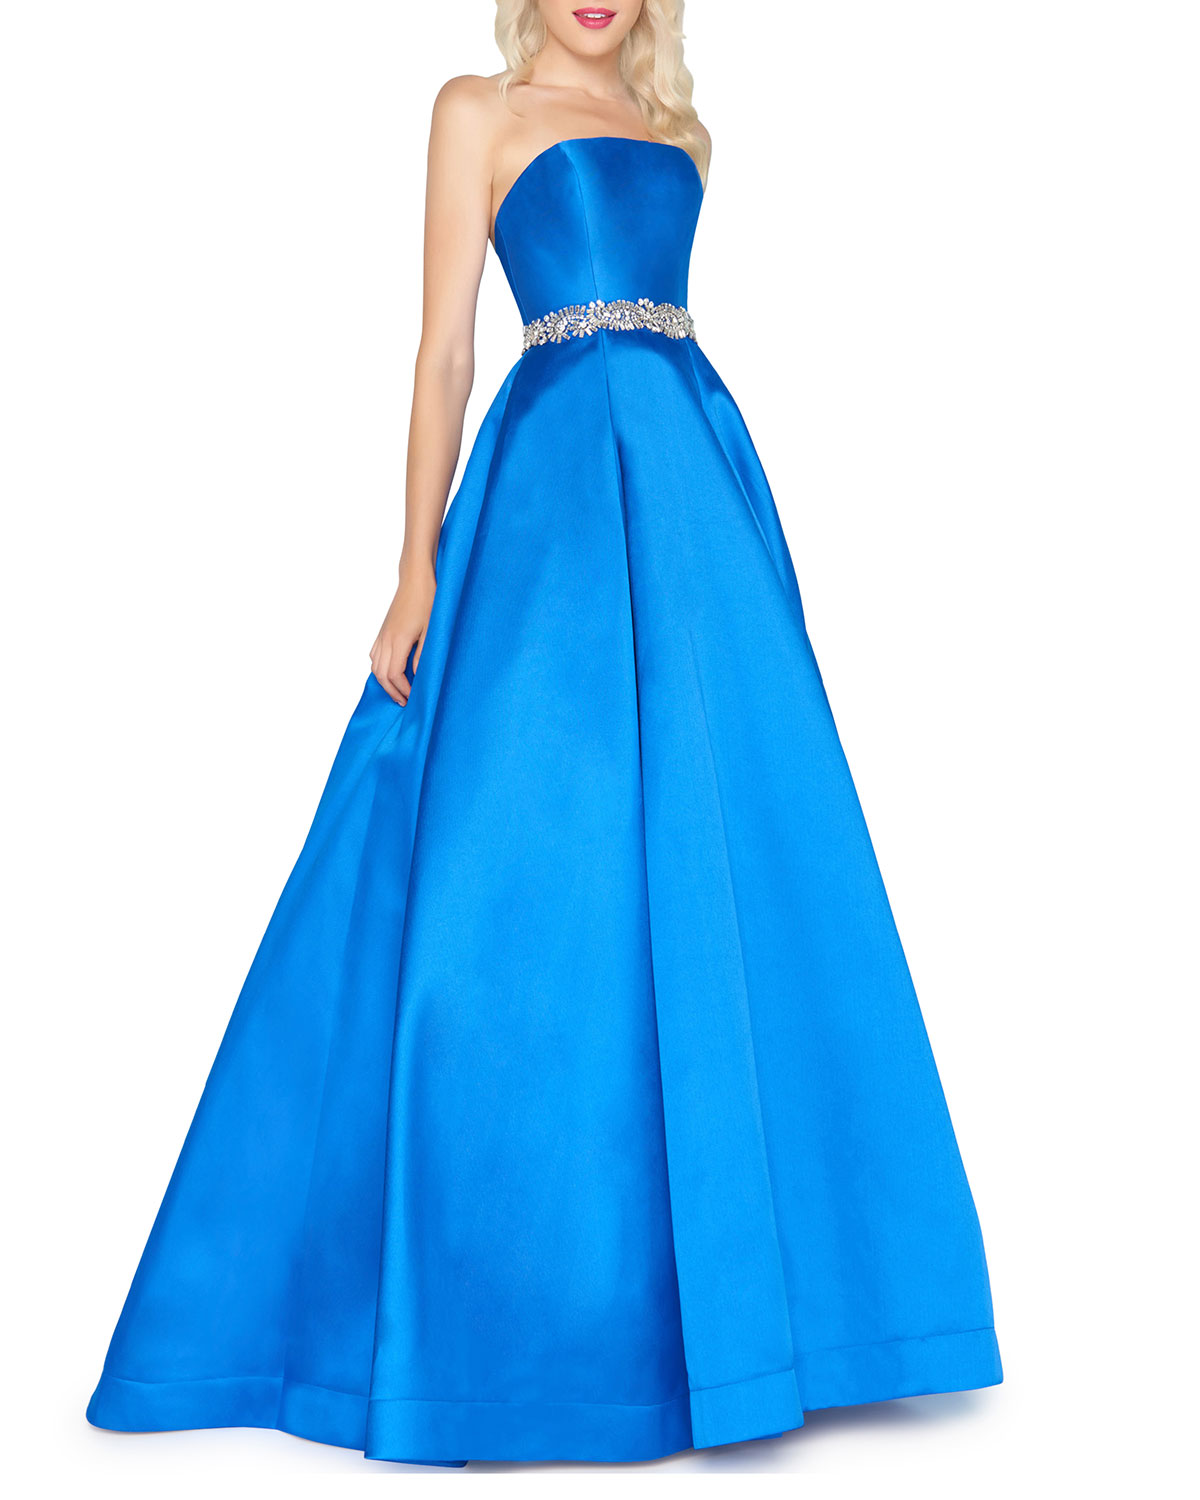 Mac Duggal Strapless Bejeweled-Waist Satin Ball Gown